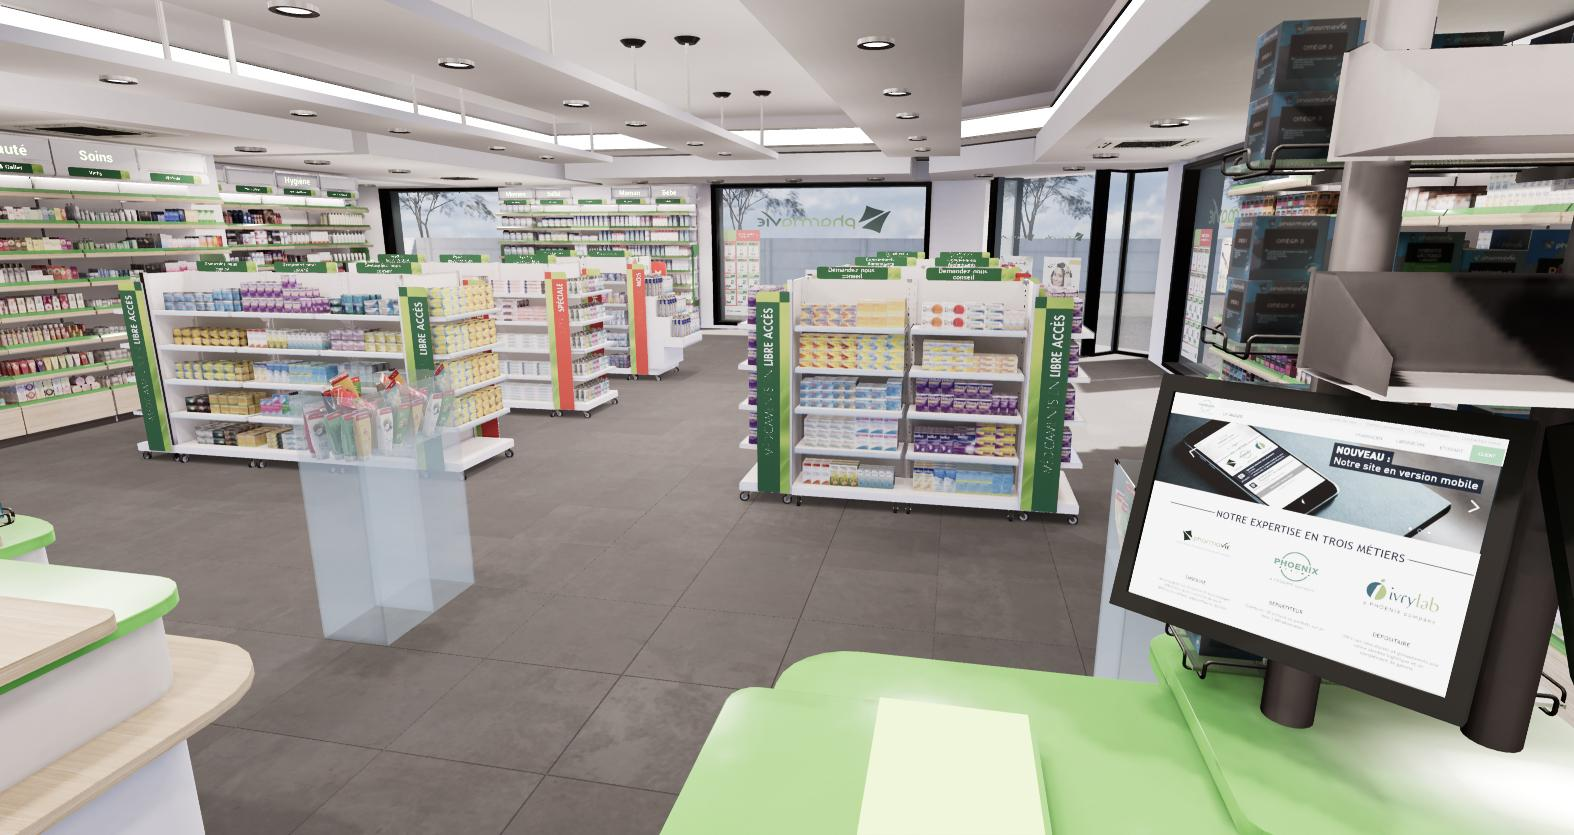 pharmavie-vr-experience-6